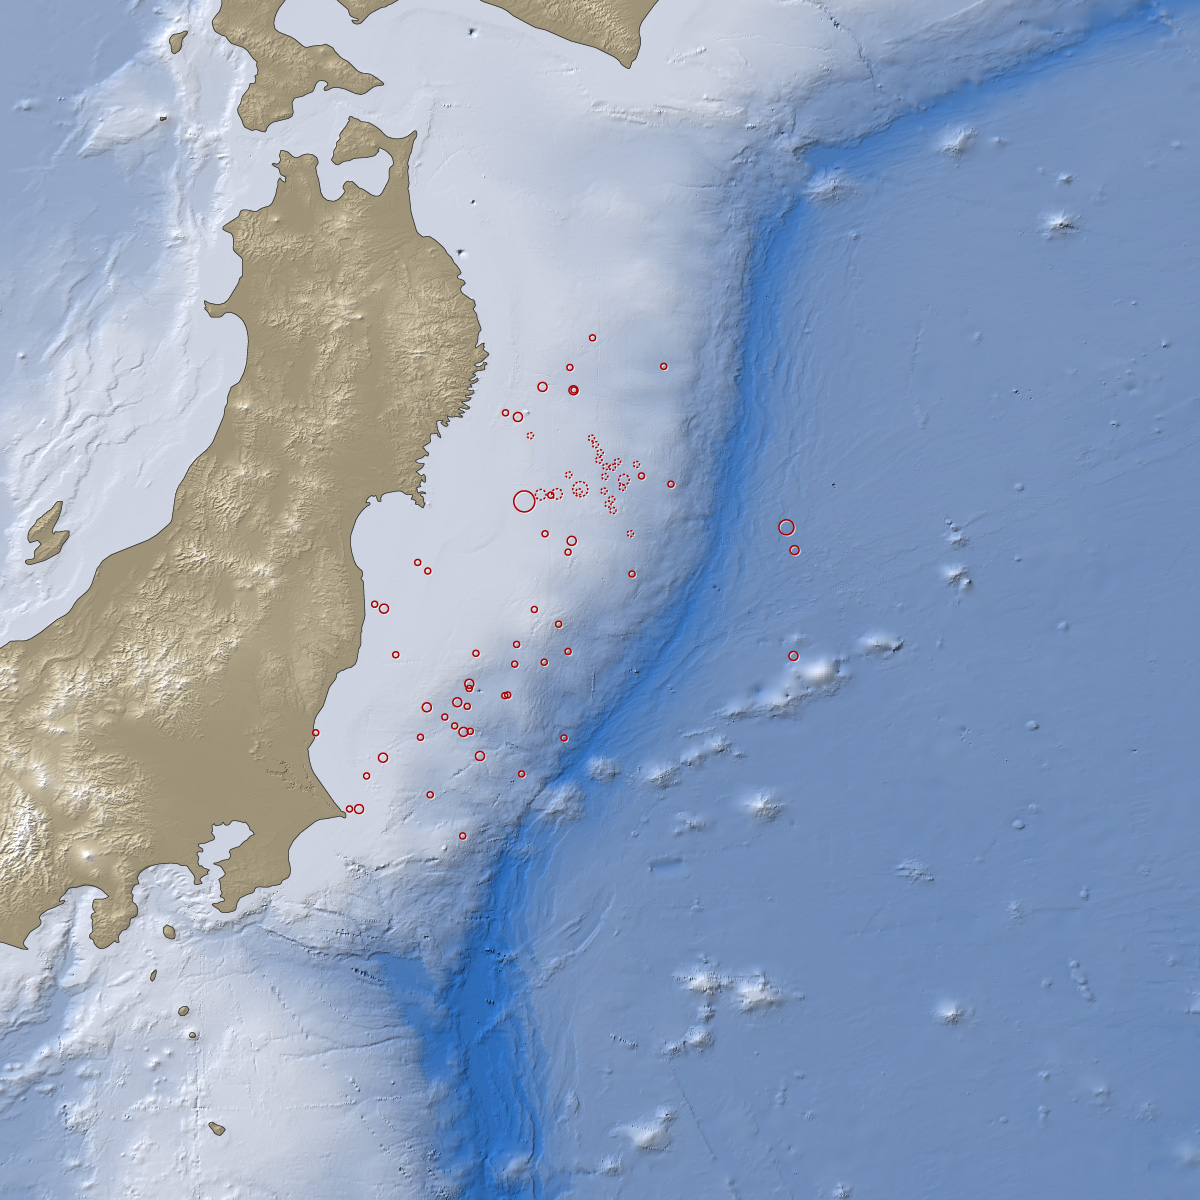 Earthquake And Tsunami Near Sendai Japan Image Of The Day - Japan map latitude and longitude